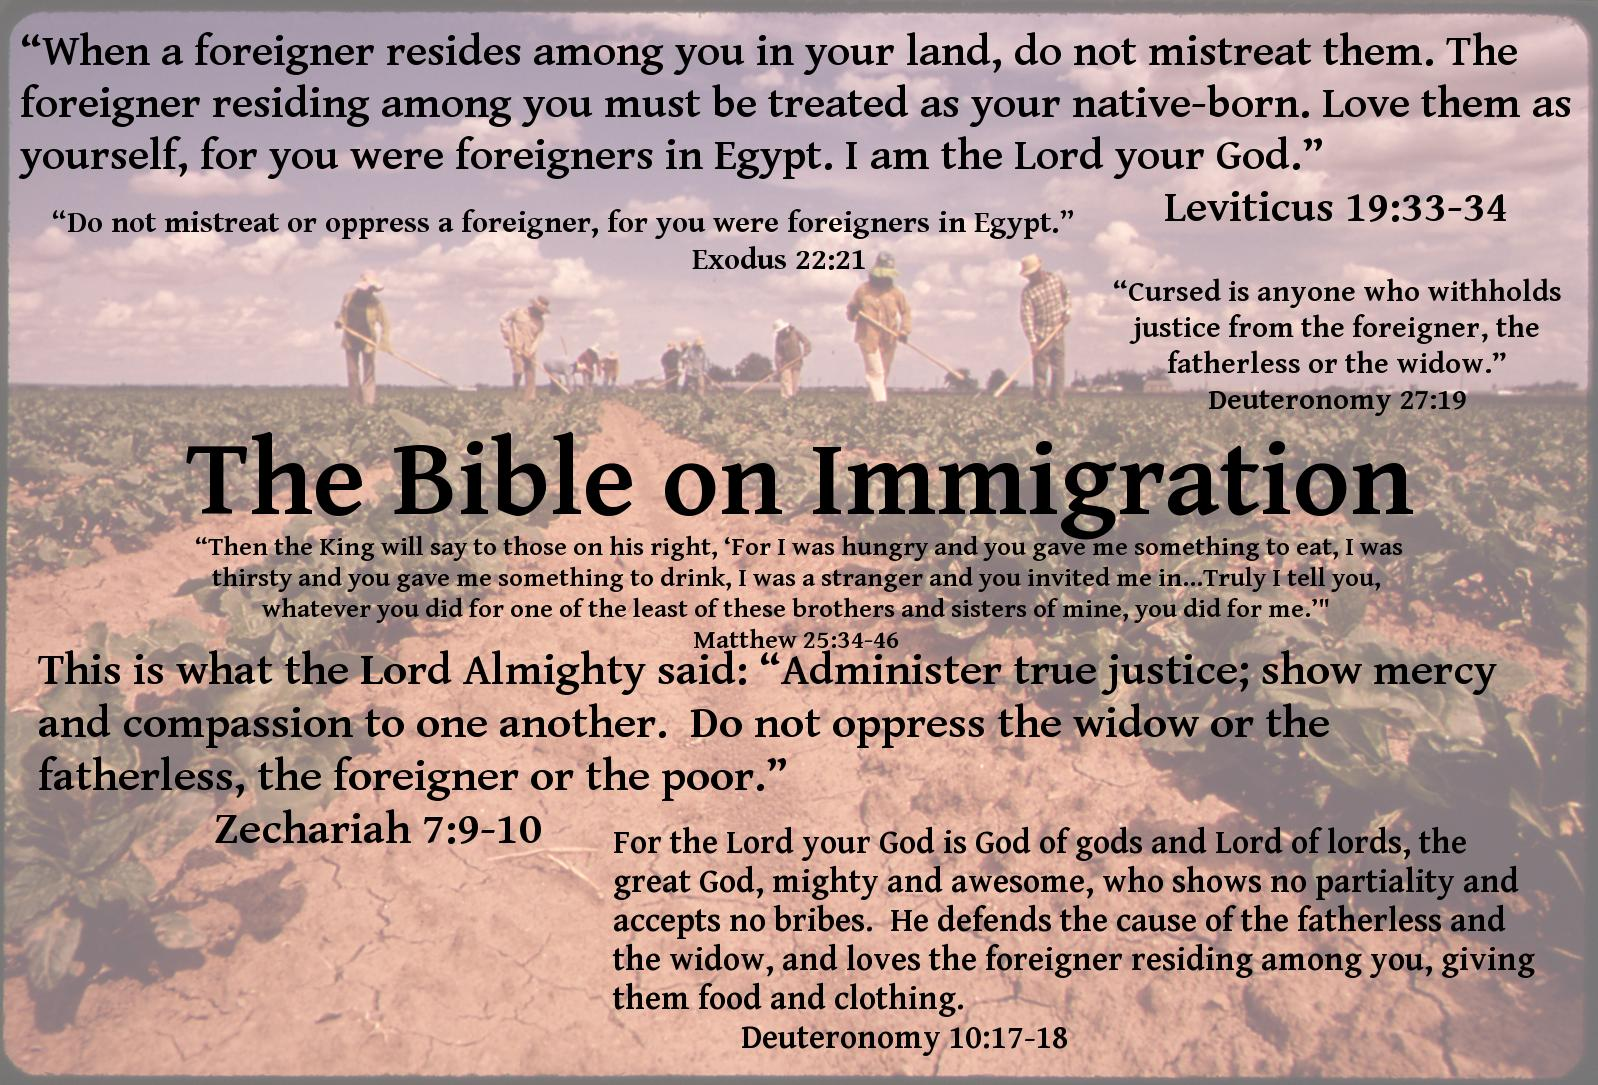 mindsoap - immigration, what does the bible say